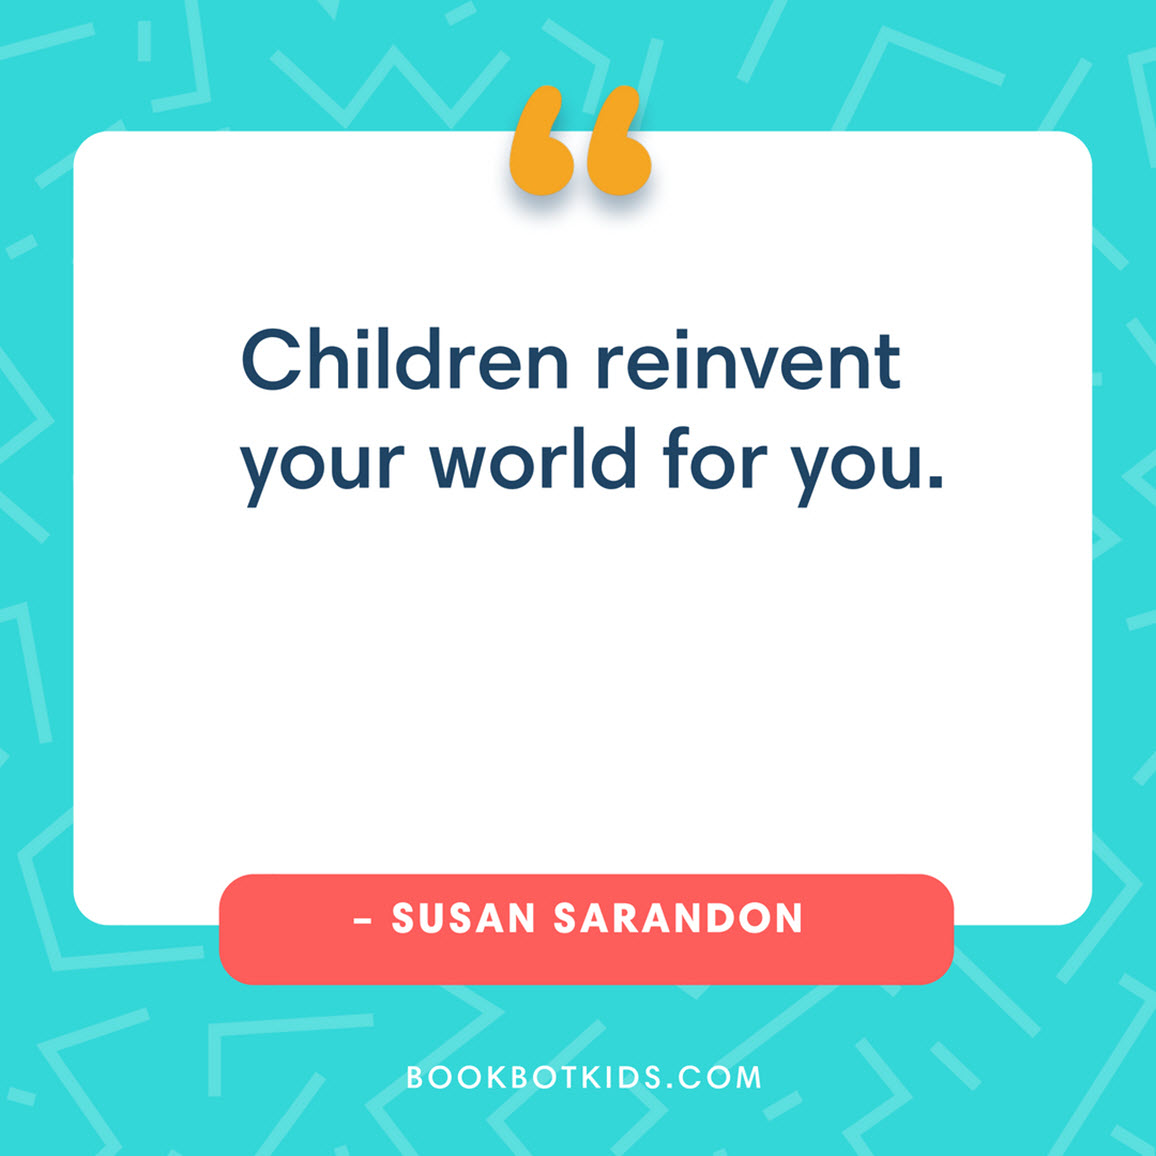 Children reinvent your world for you. – Susan Sarandon